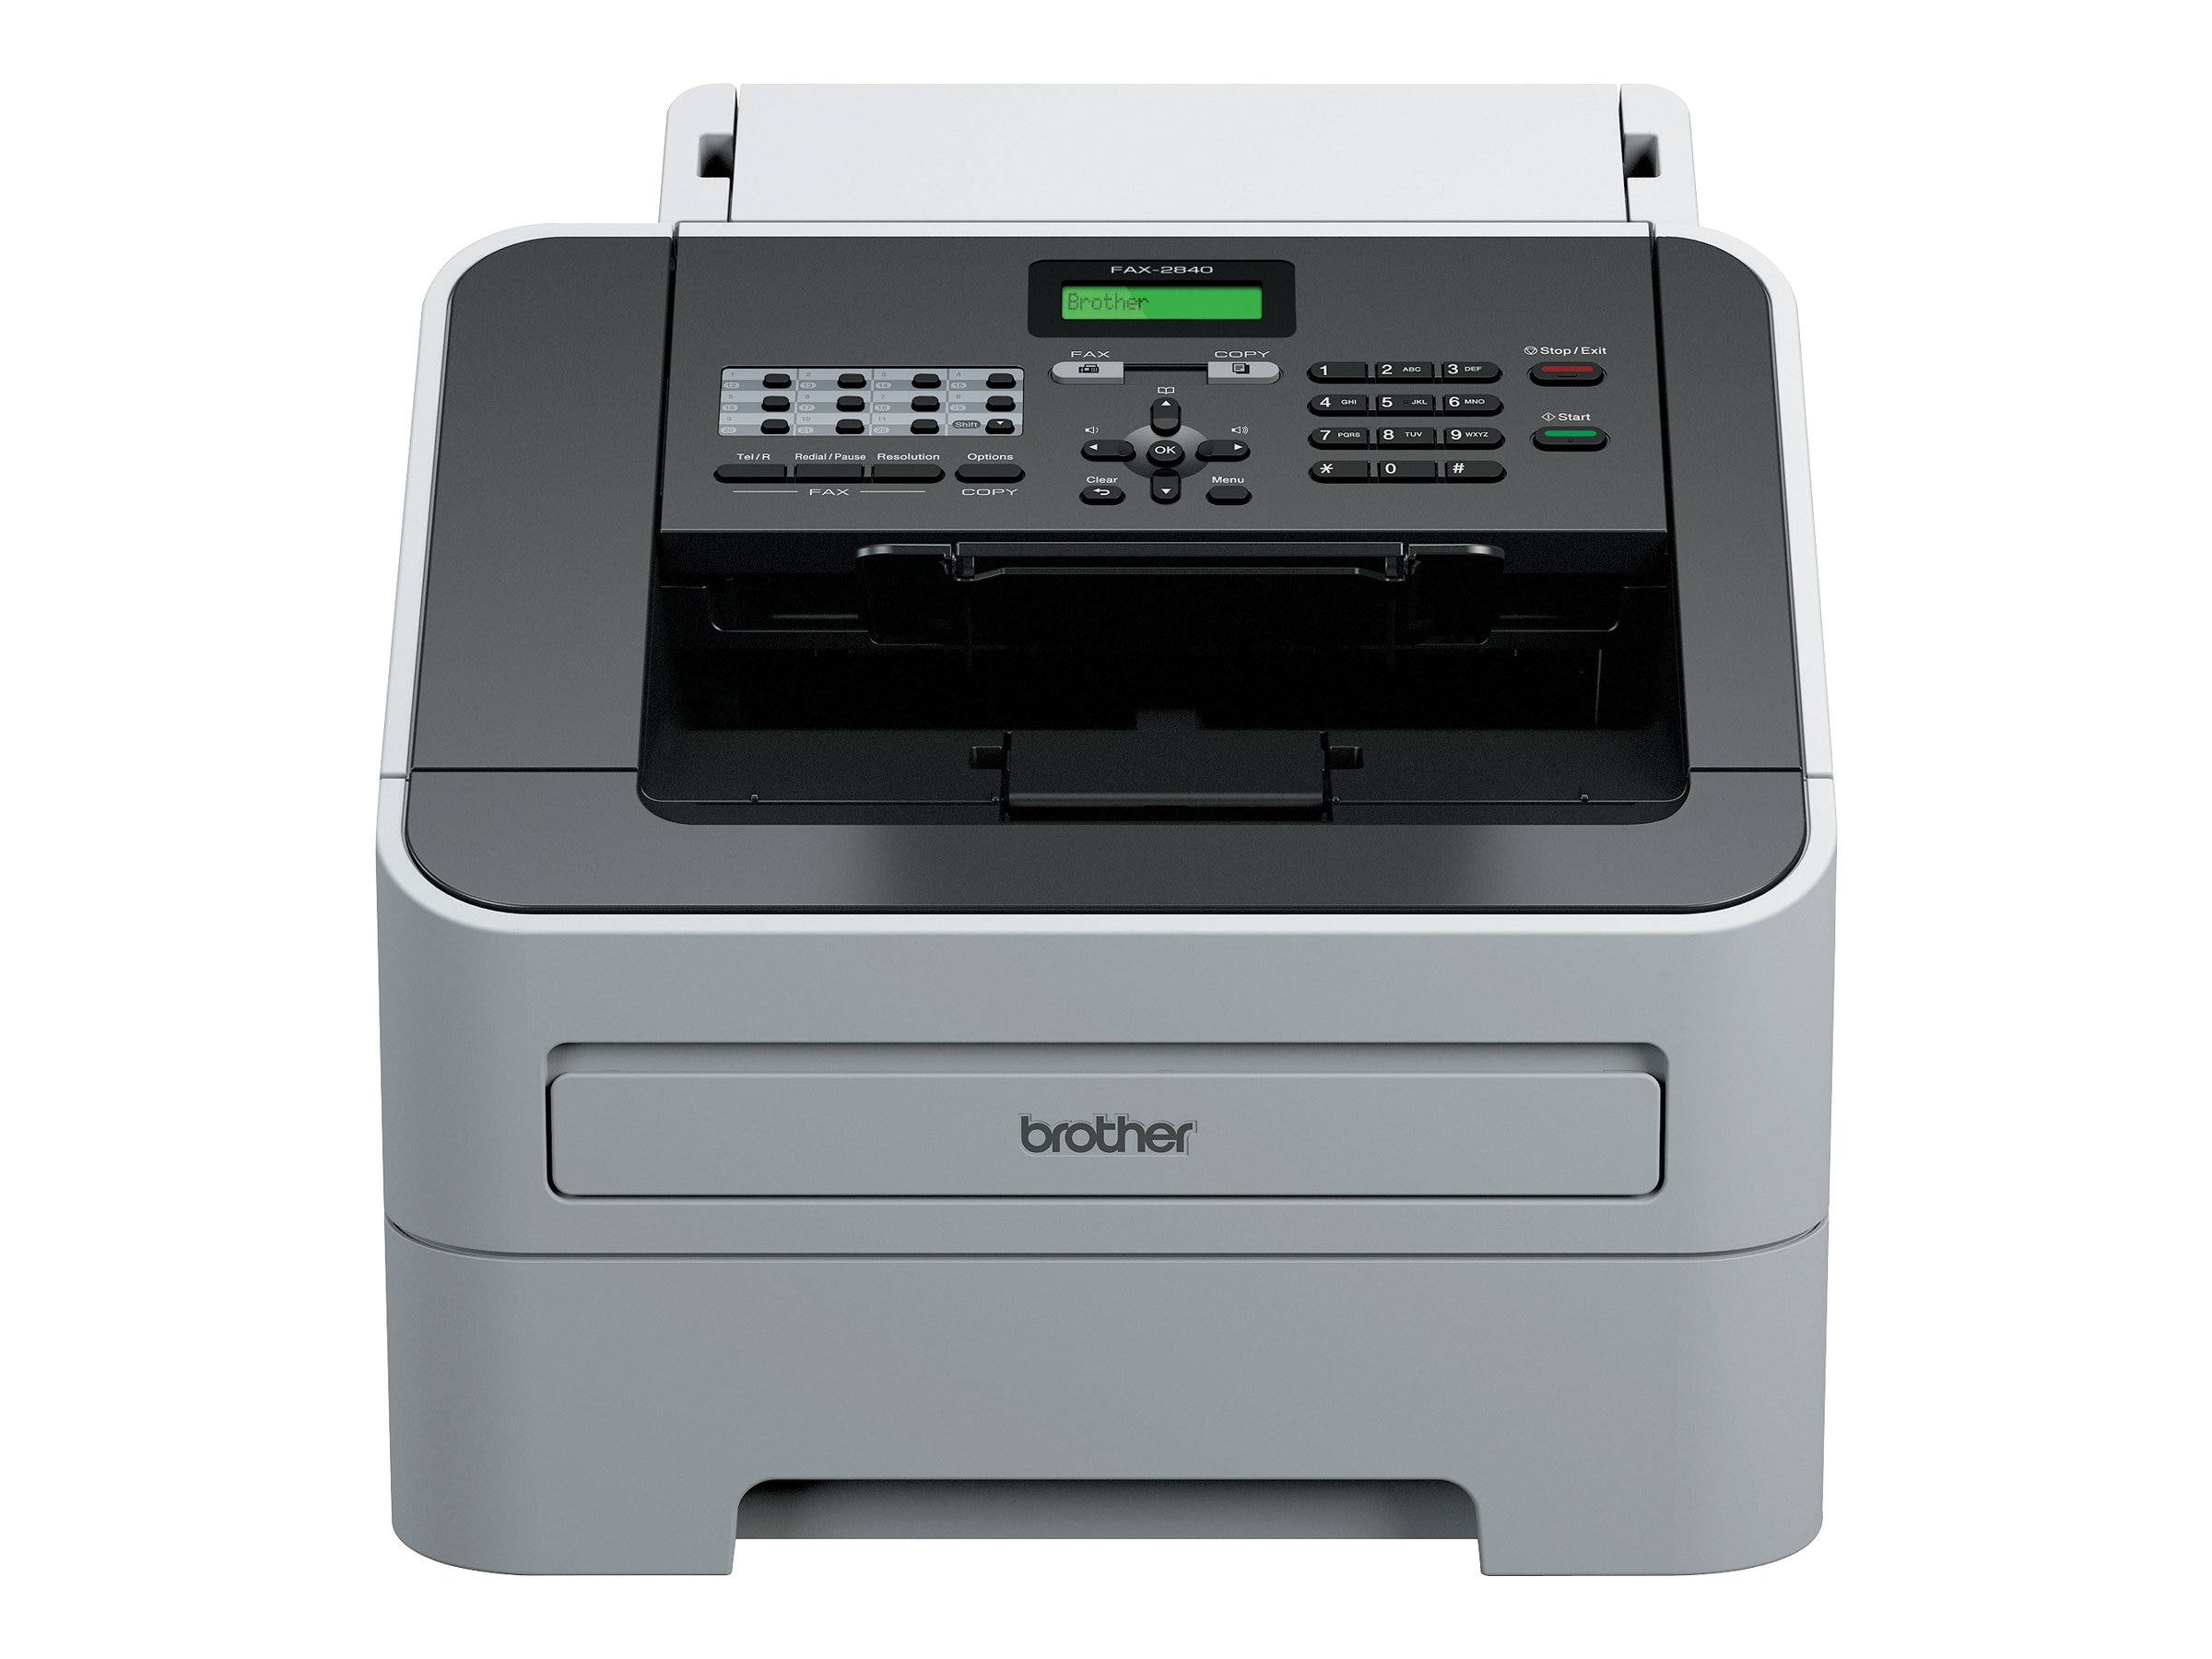 Brother FAX-2840 Image 2